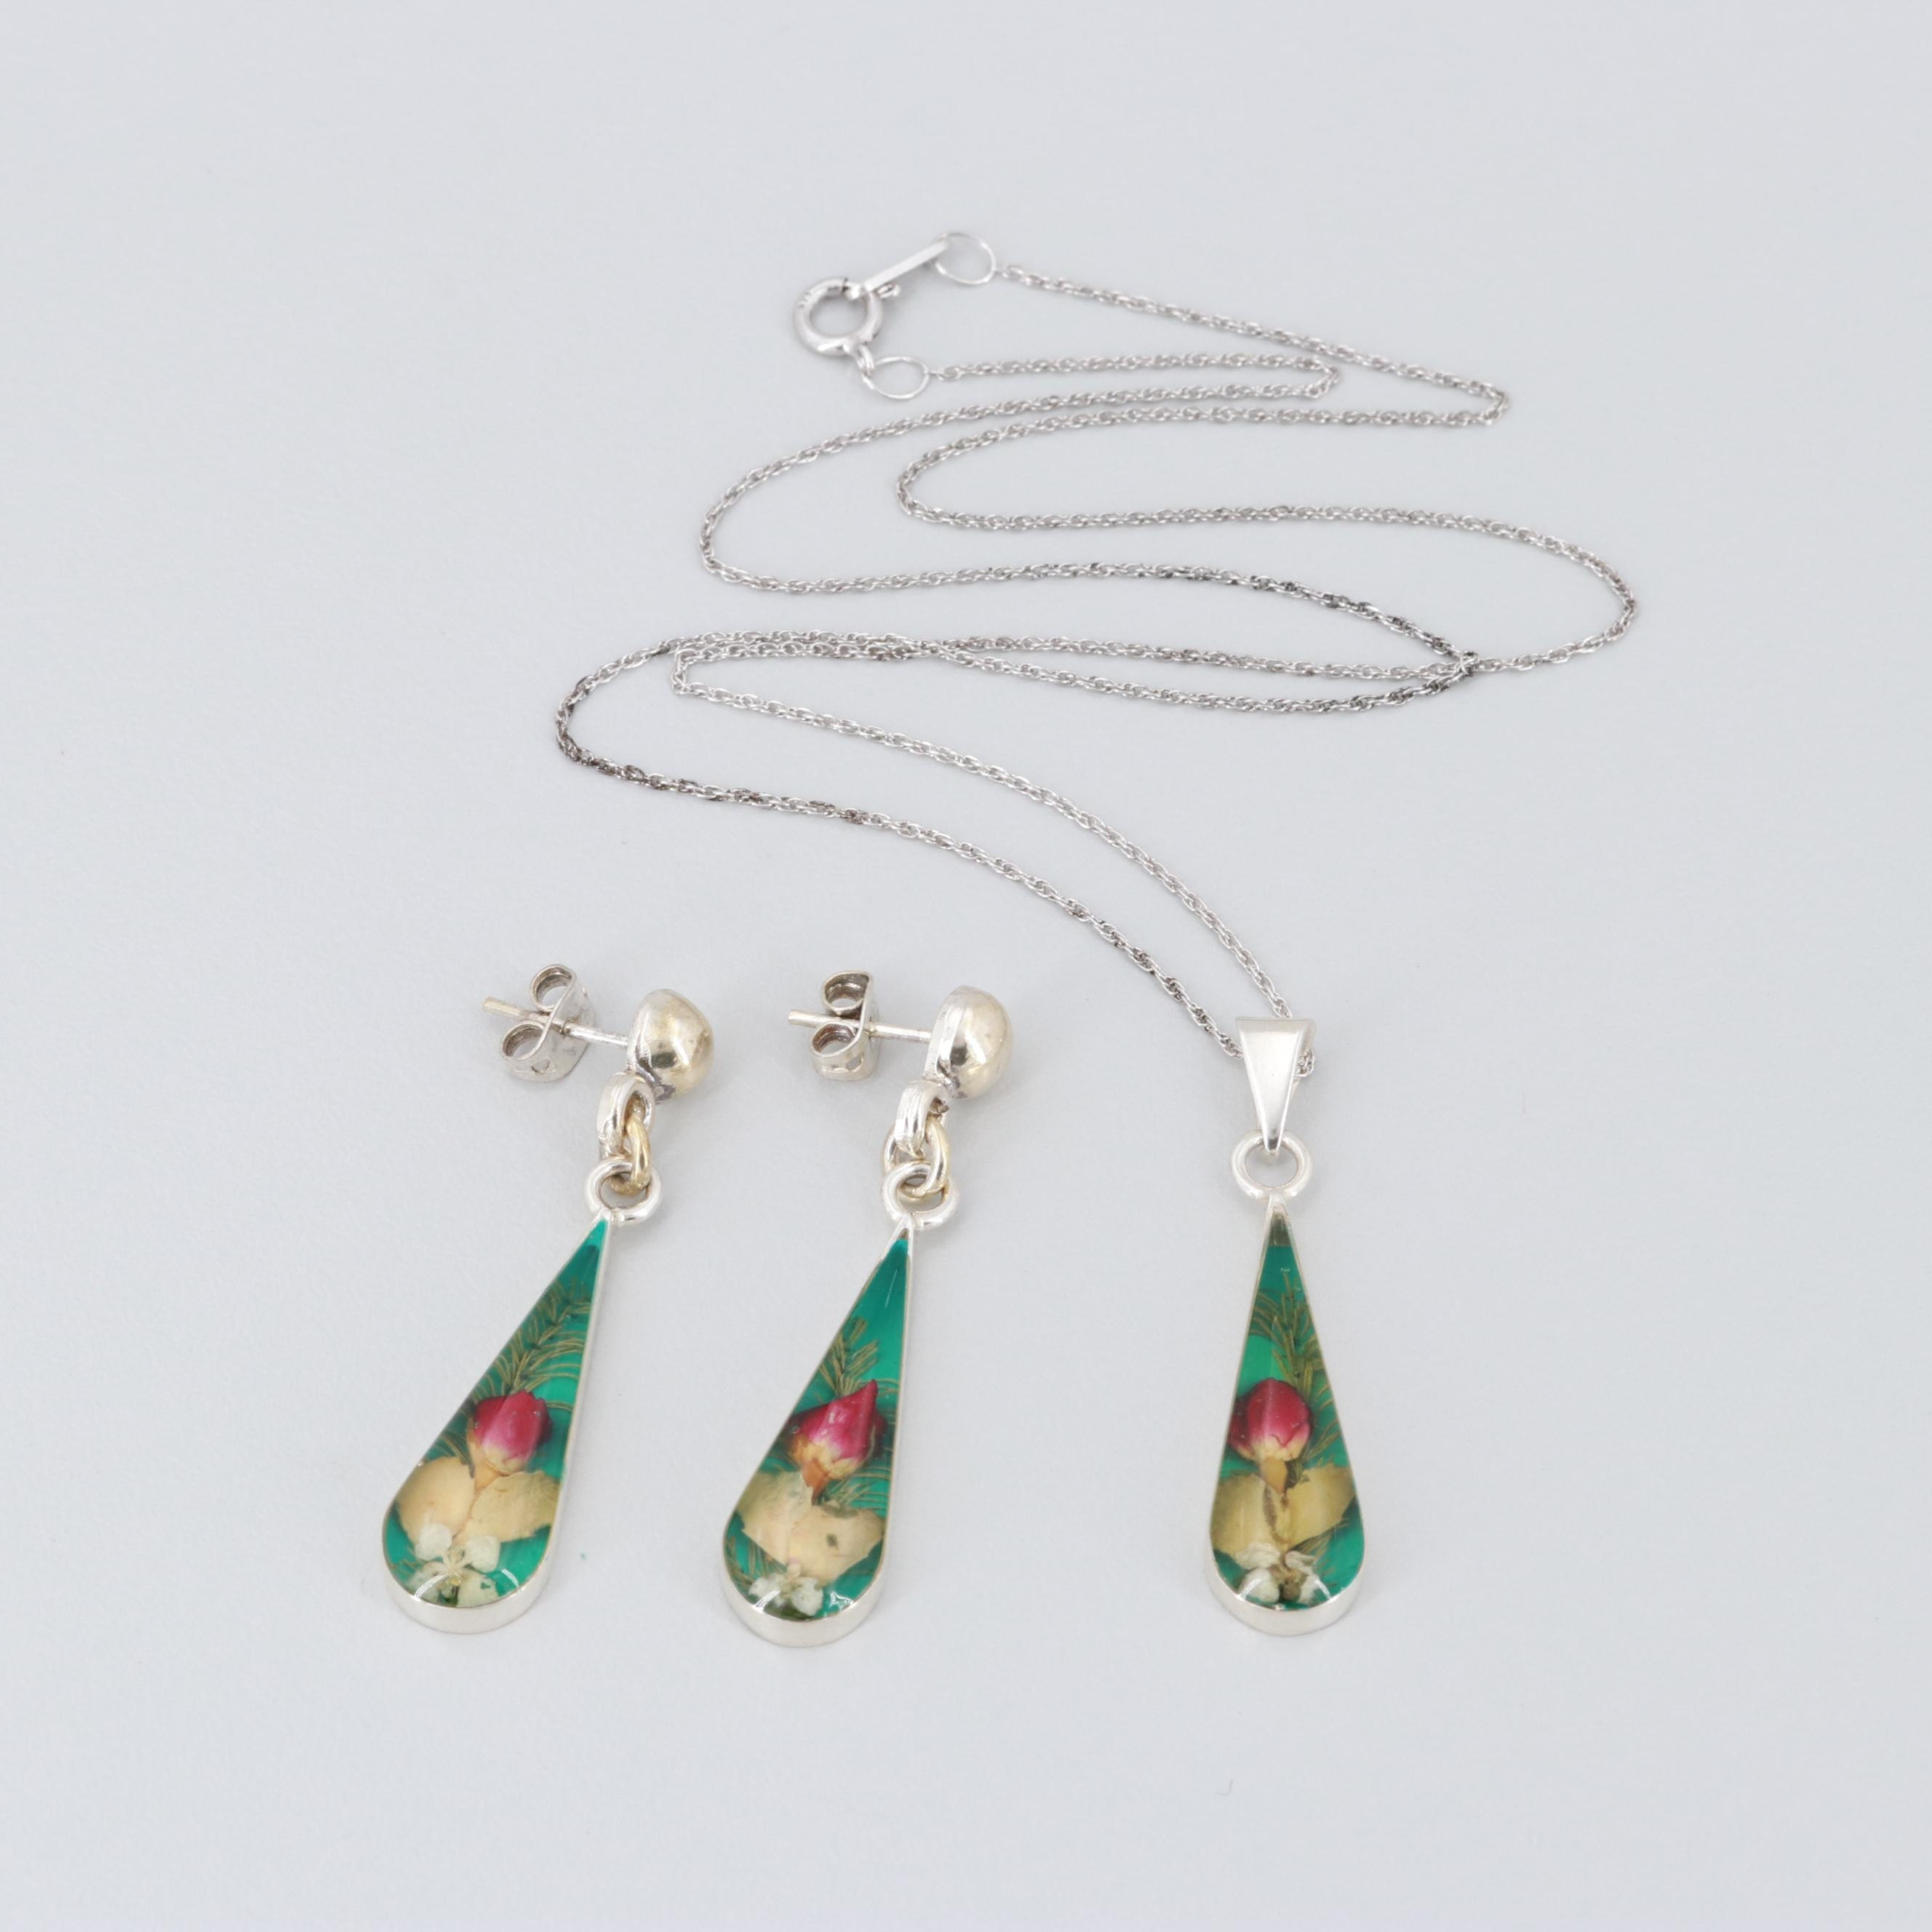 Mexican Sterling Silver Resin Earrings and Necklace with Pendant